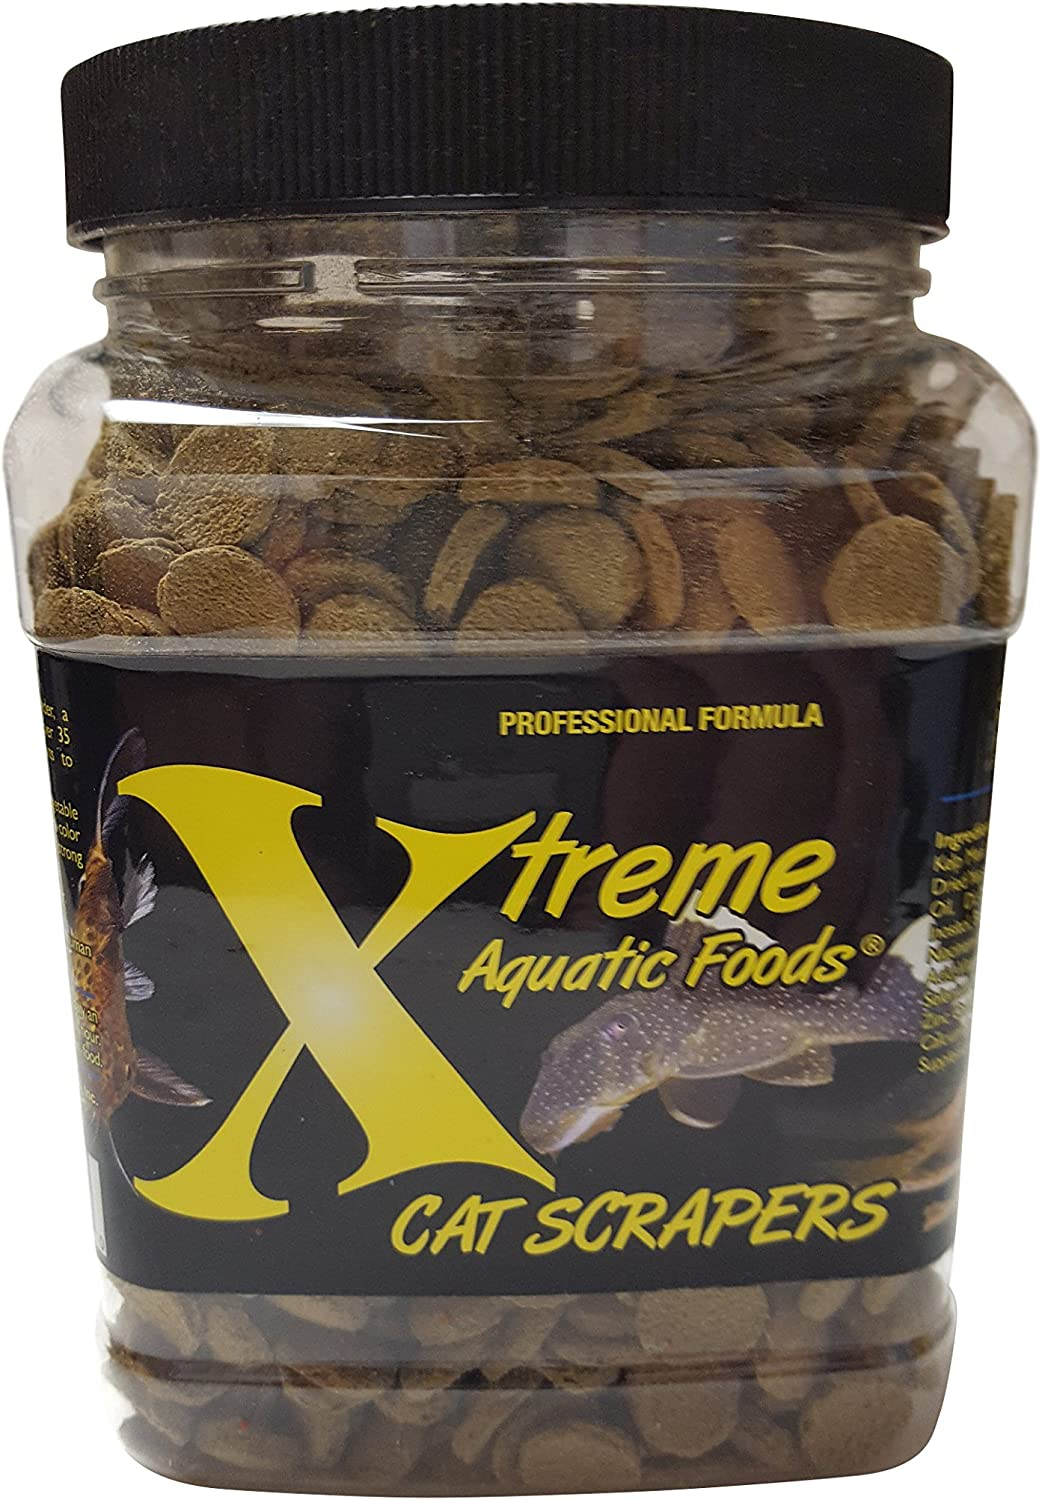 Xtreme Aquatic Foods 2223-E 9mm Cat Scrapers Disk, 18 oz